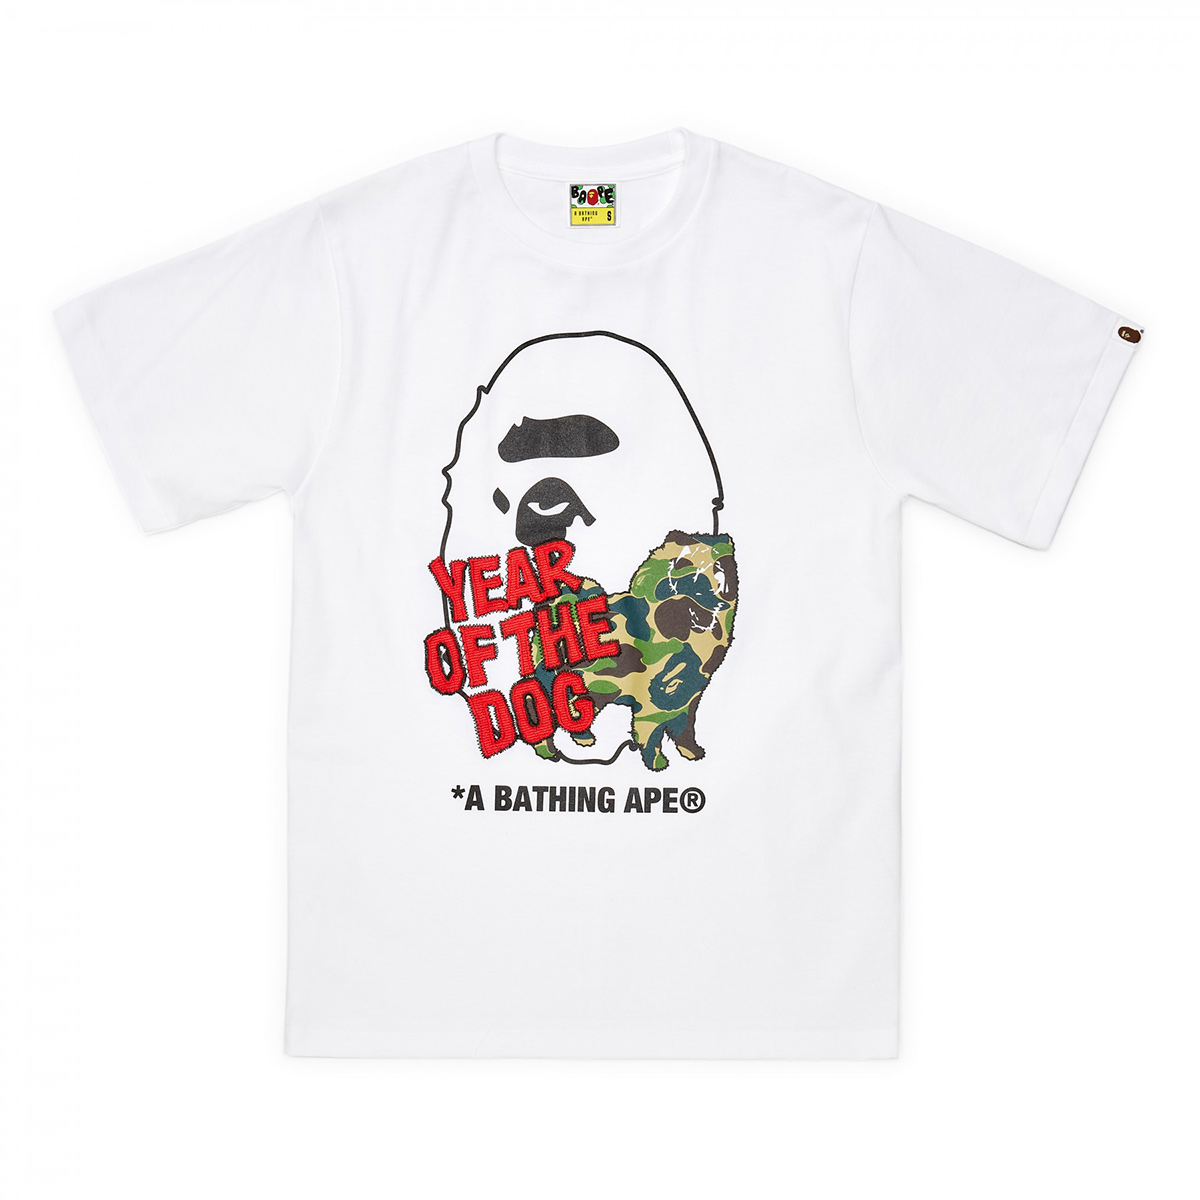 Dover Street Market Year of the Dog T-Shirt